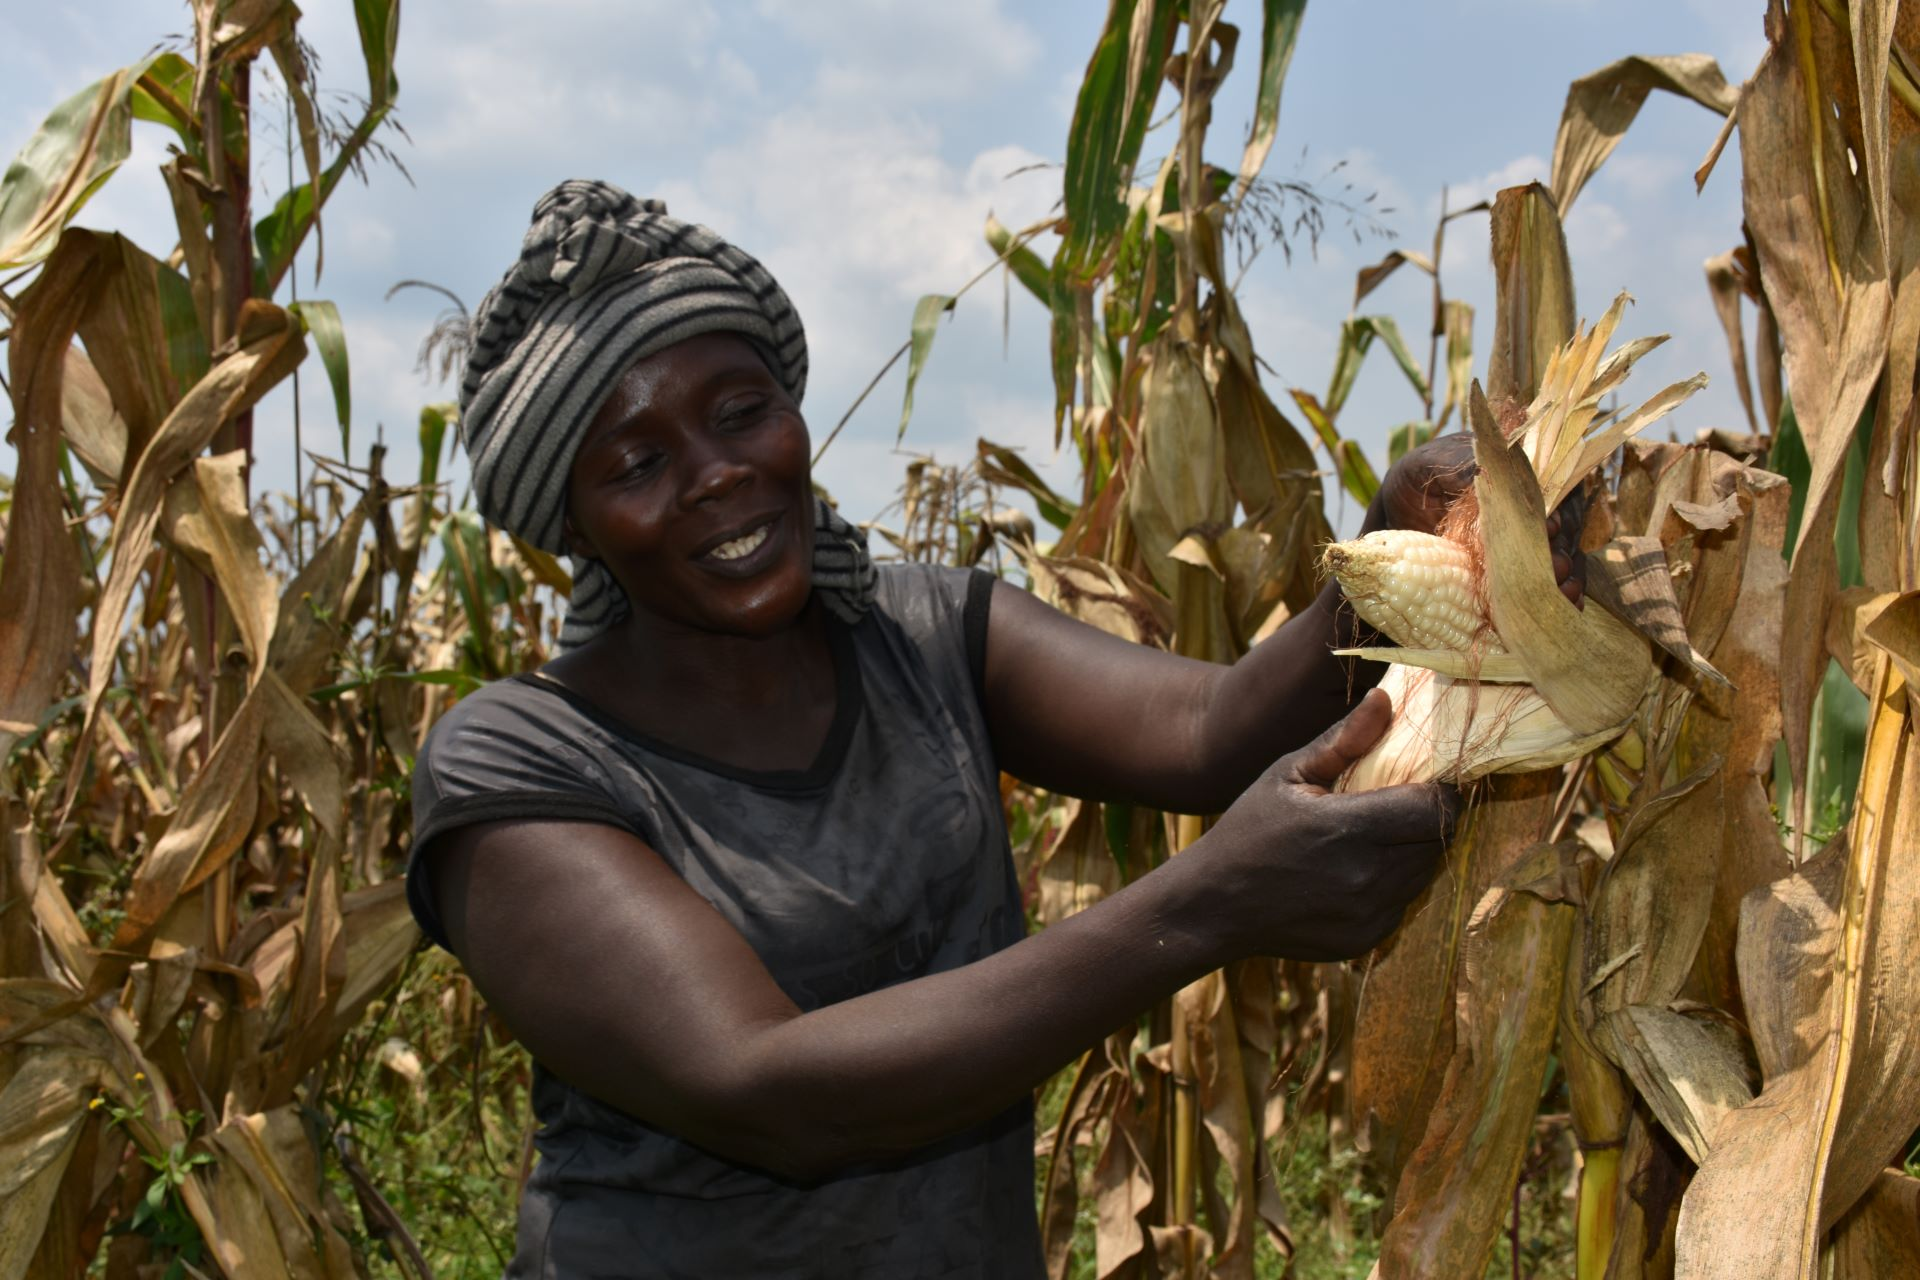 Alinda Sarah demostrates how happy she is with the maize cob due for harvest on the farm she owns with her husband in Masindi, mid-western Uganda. (Photo: Joshua Masinde/CIMMYT)